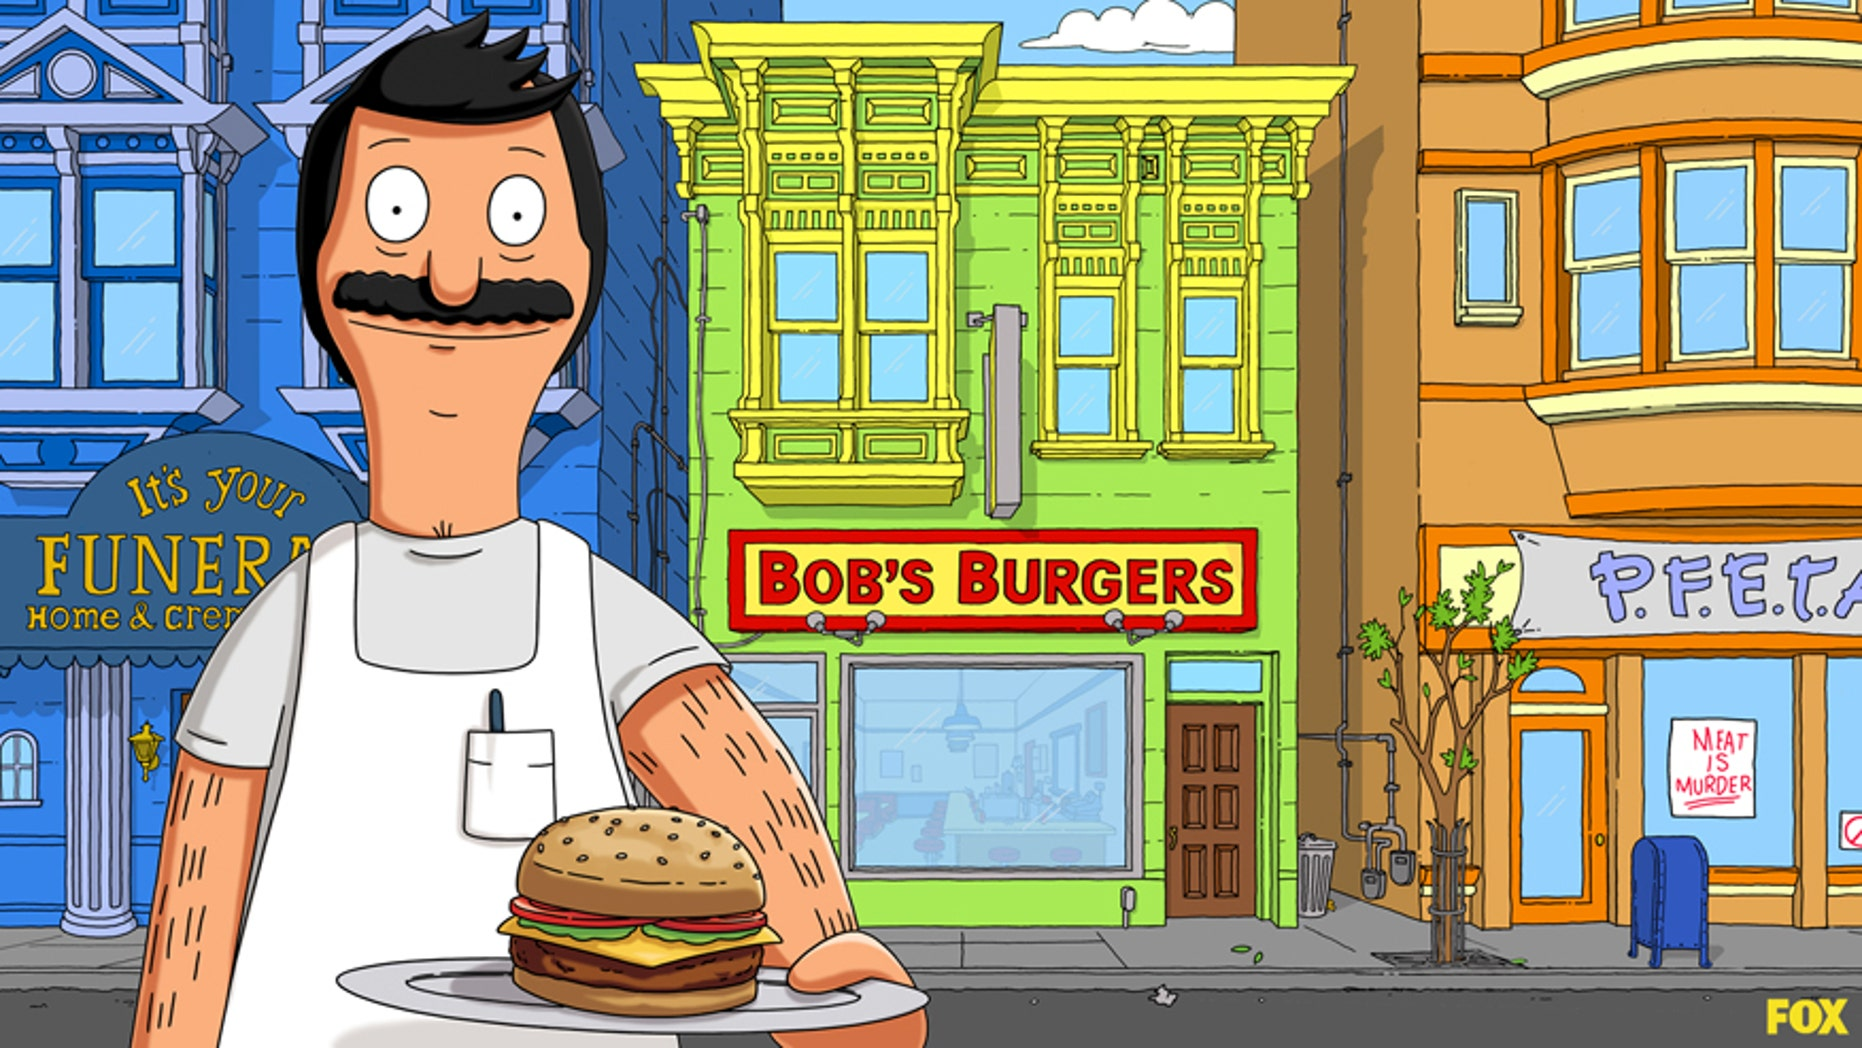 Bob Belcher's animated burgers are getting the real world treatment thanks to a fan-turned-home chef.